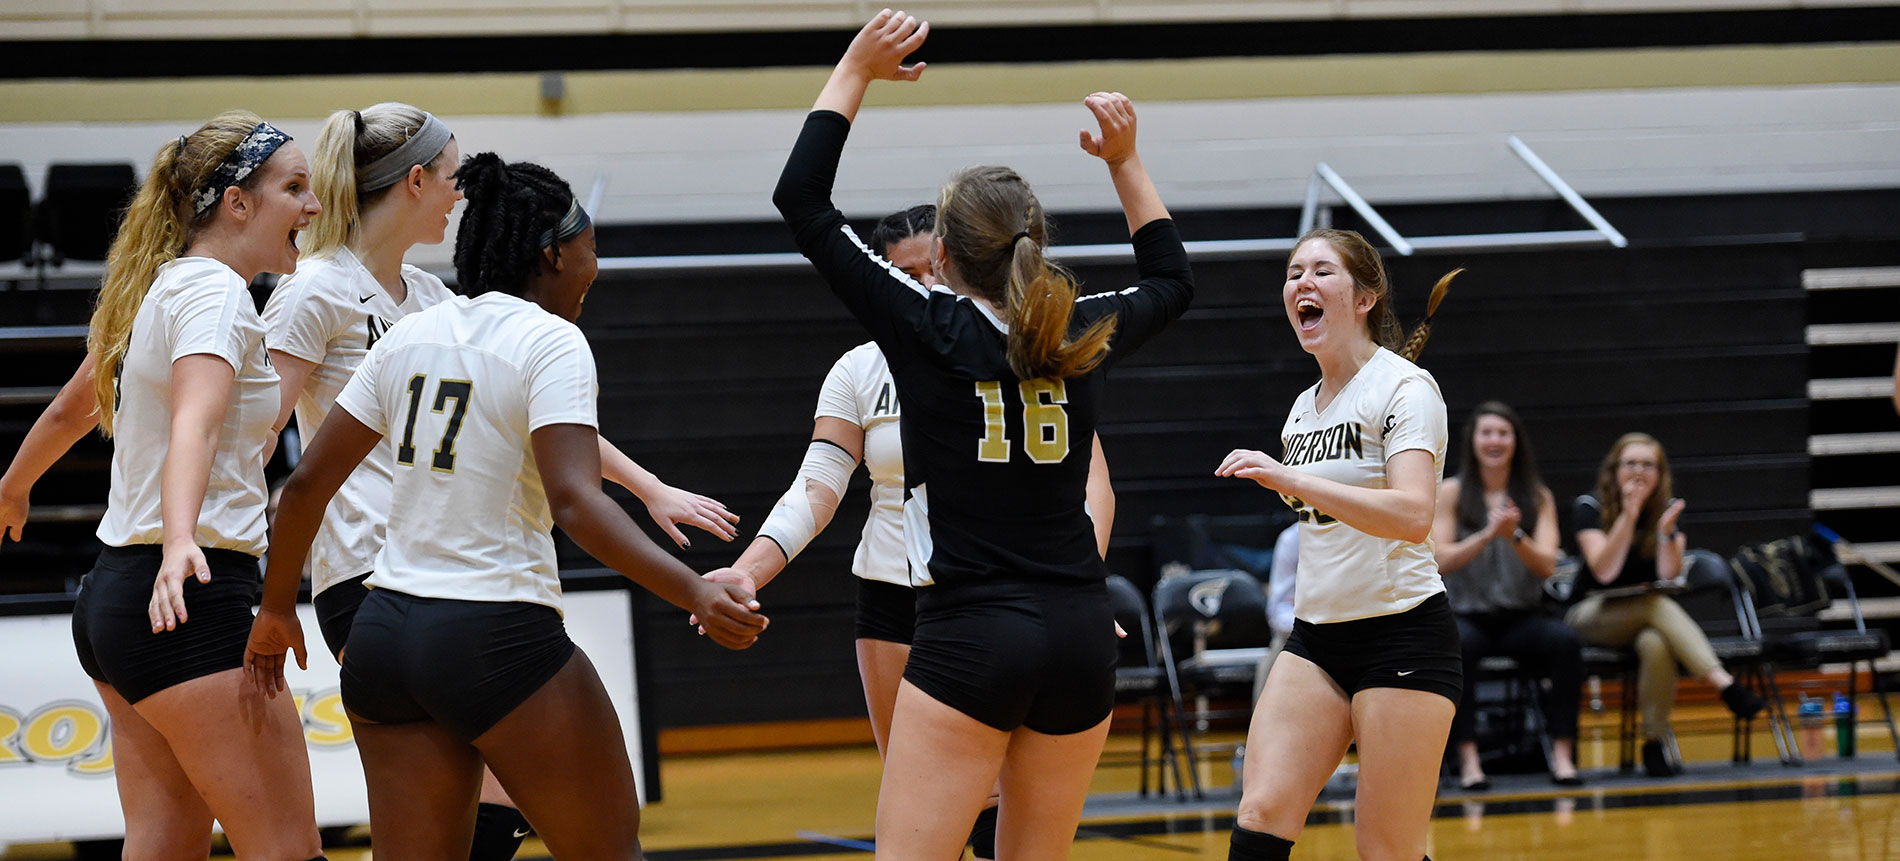 Trojans Notch 12th Sweep of the Season with Win over Mars Hill